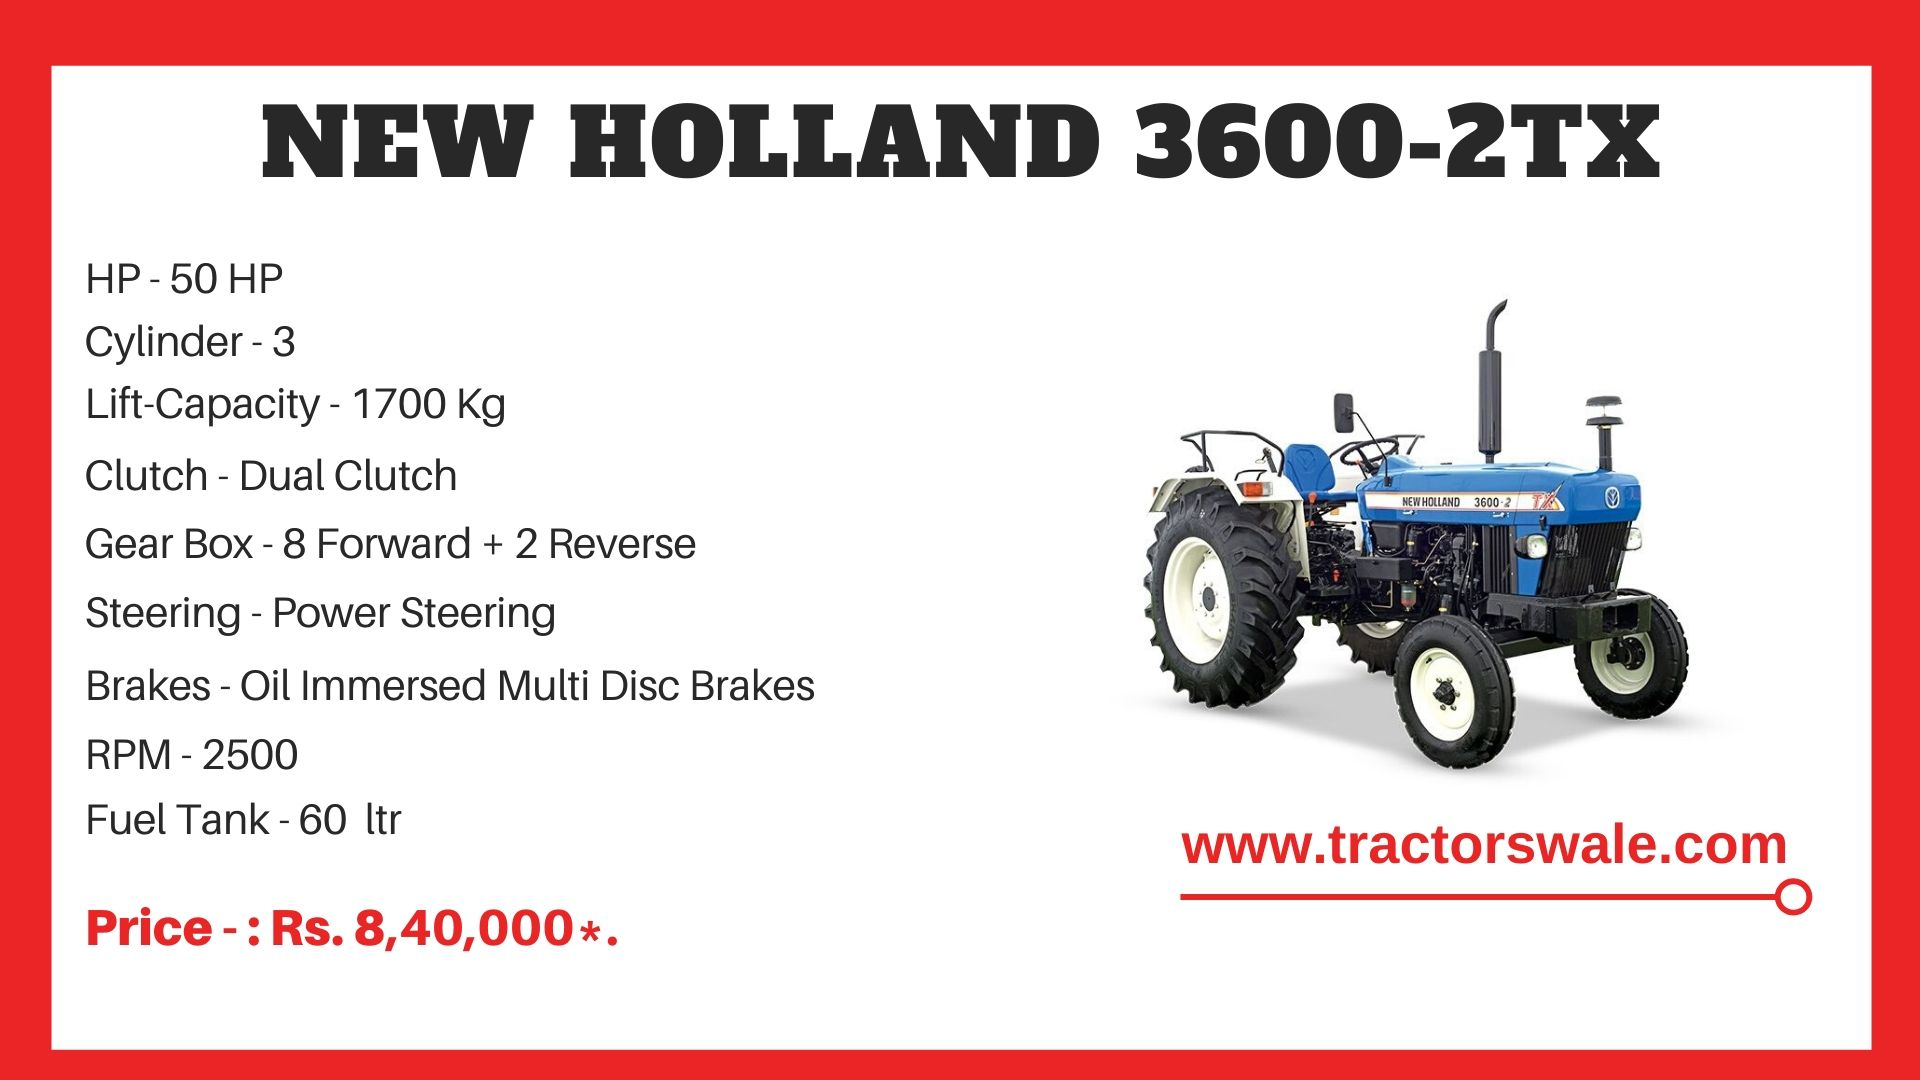 New Holland 3600 tractor specs